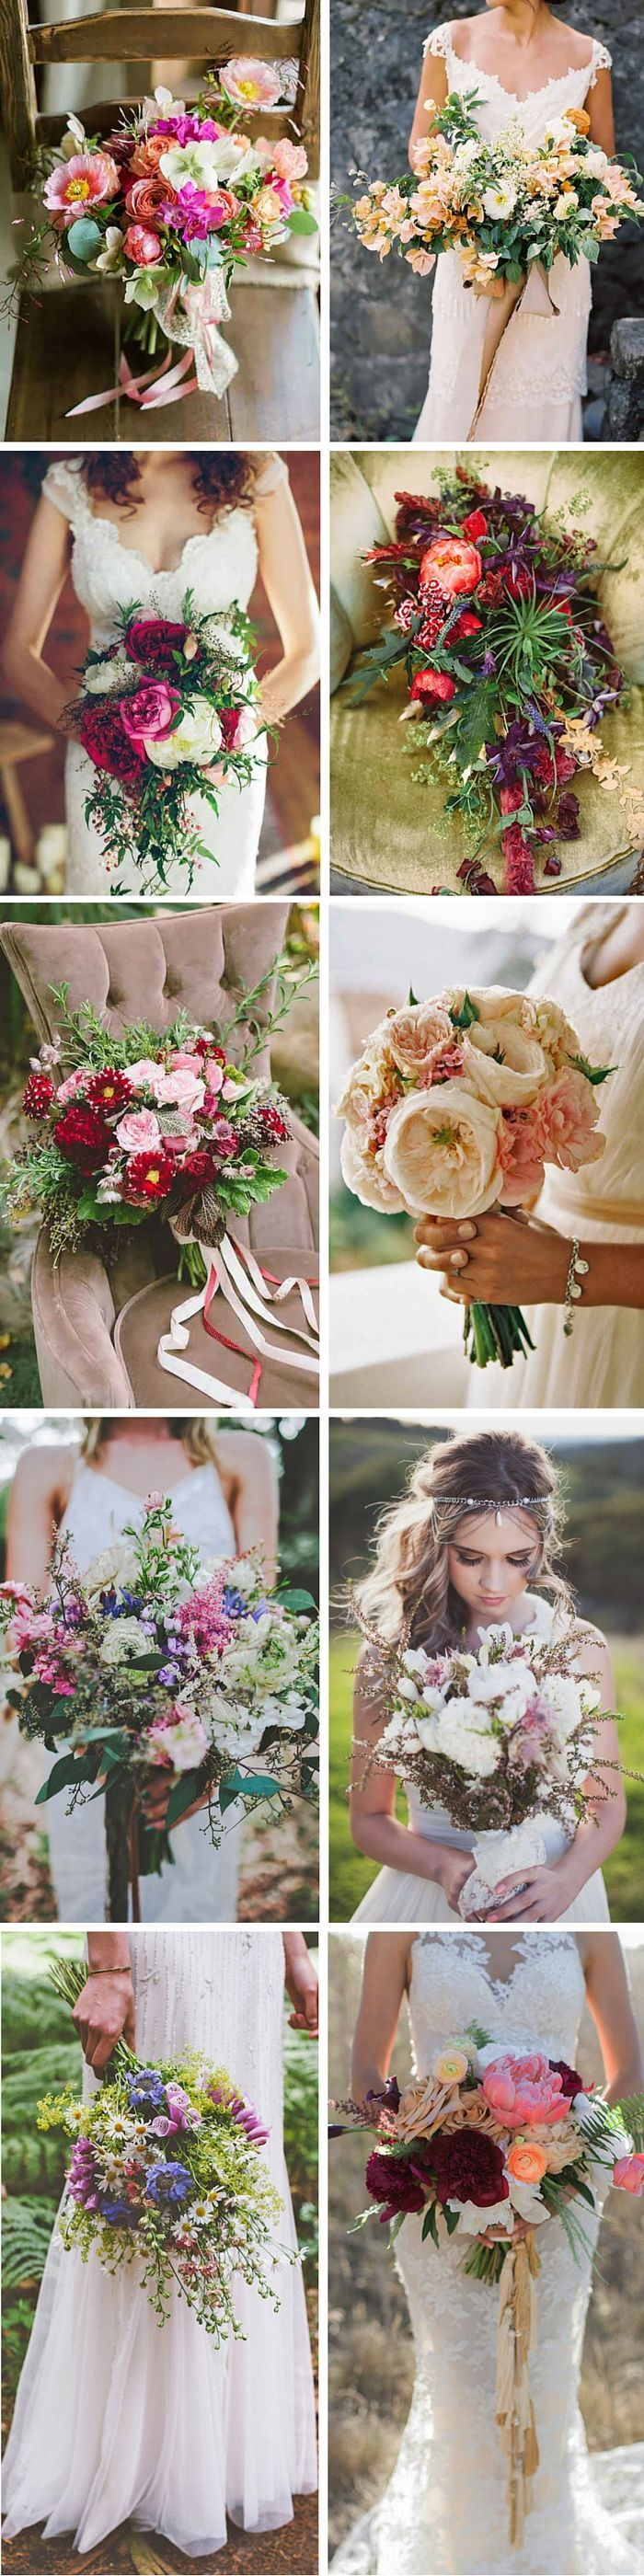 Bohemian Wedding Bouquets That Are Totally Chic. Bohemian chic wedding bouquets are full of whimsical details, wild flowers and feathers.